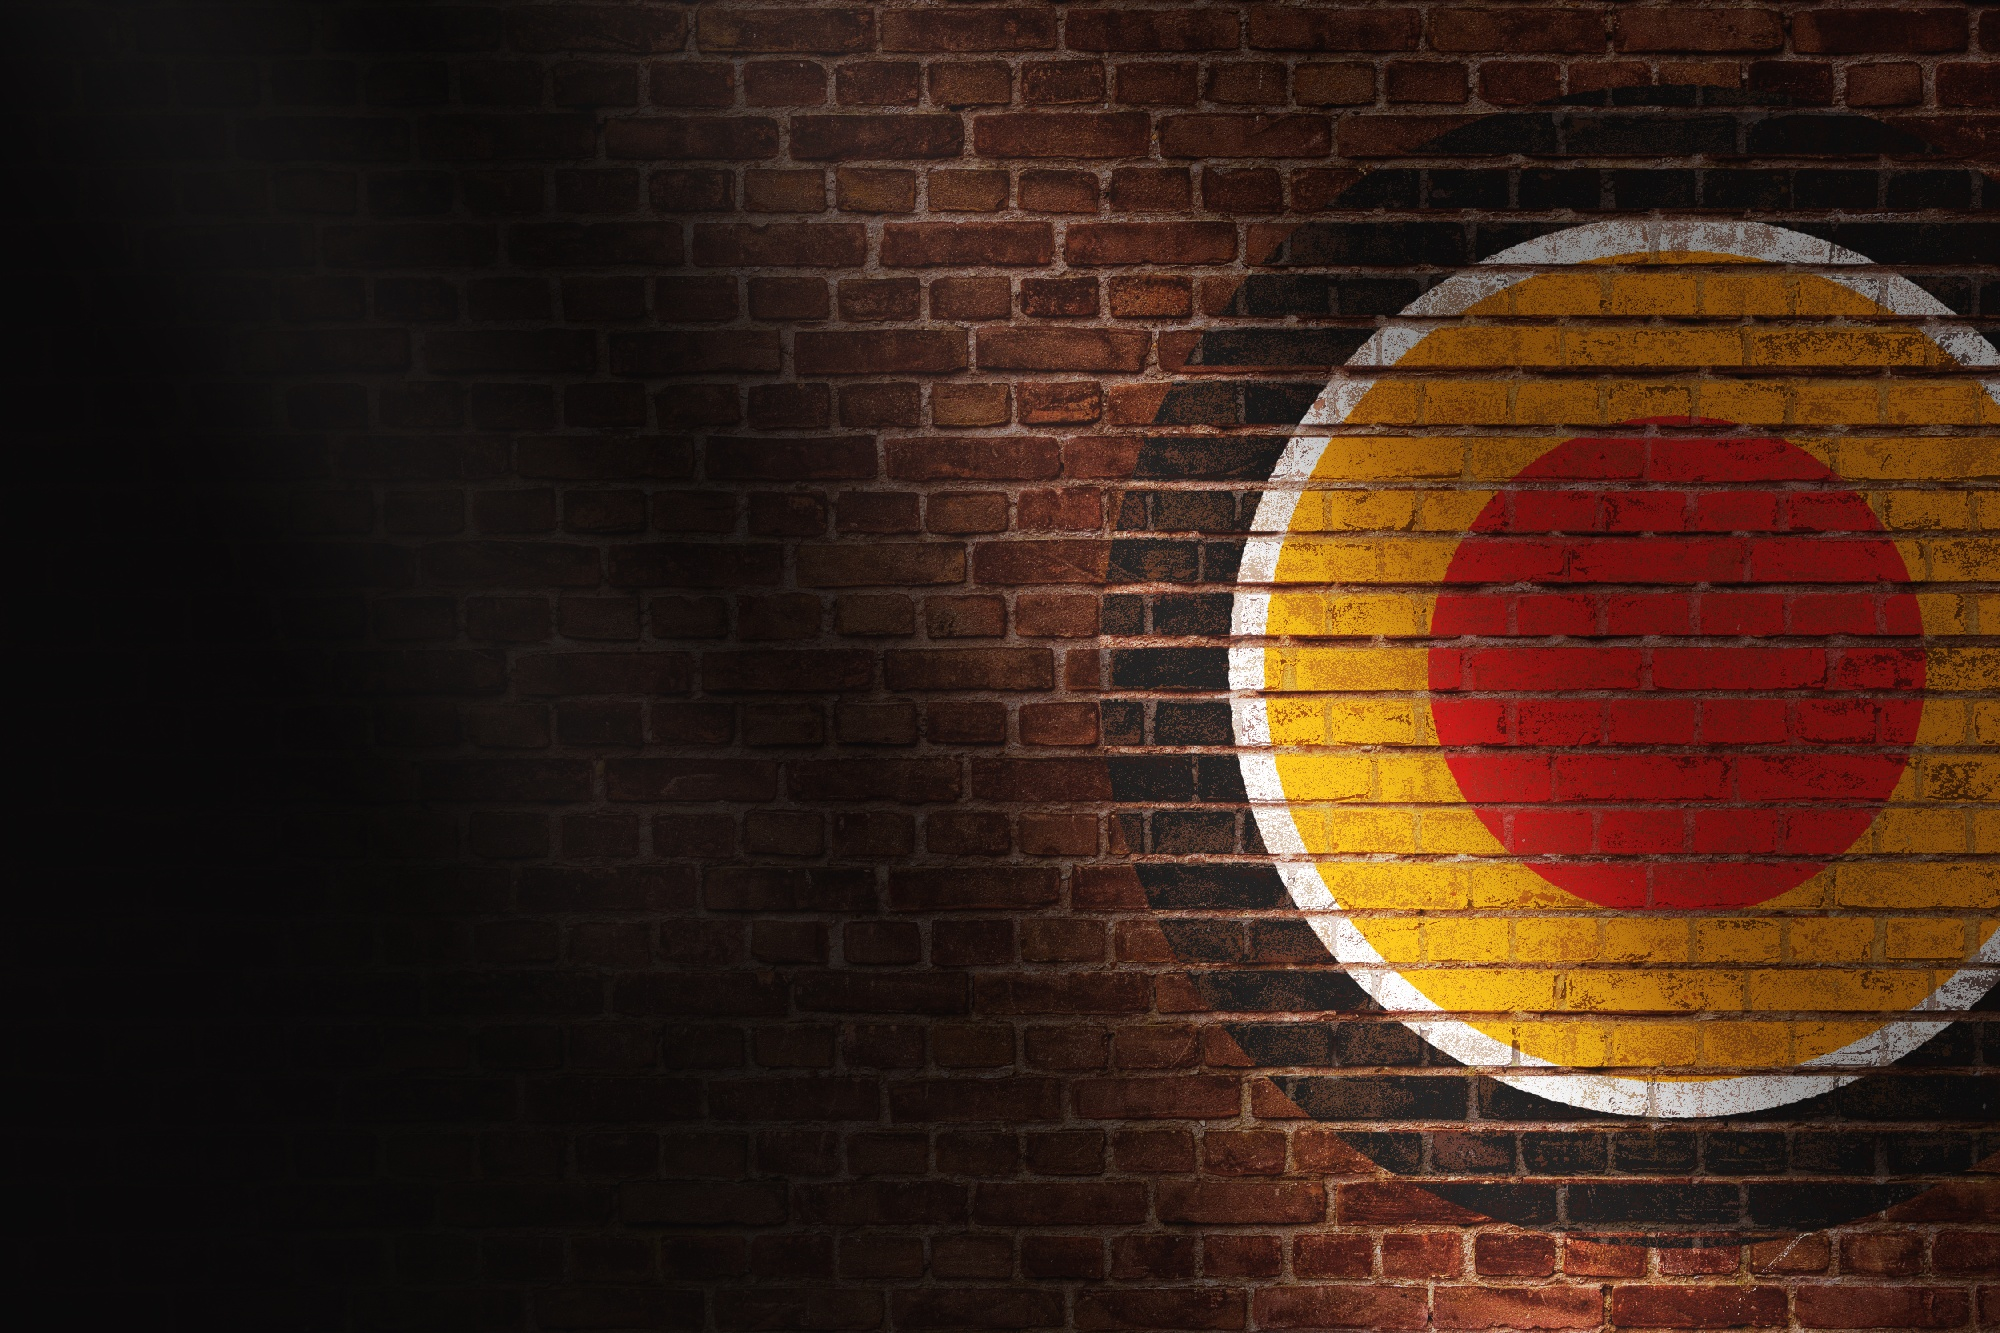 Marketing Firm Zoom Backdrop with logo on brick